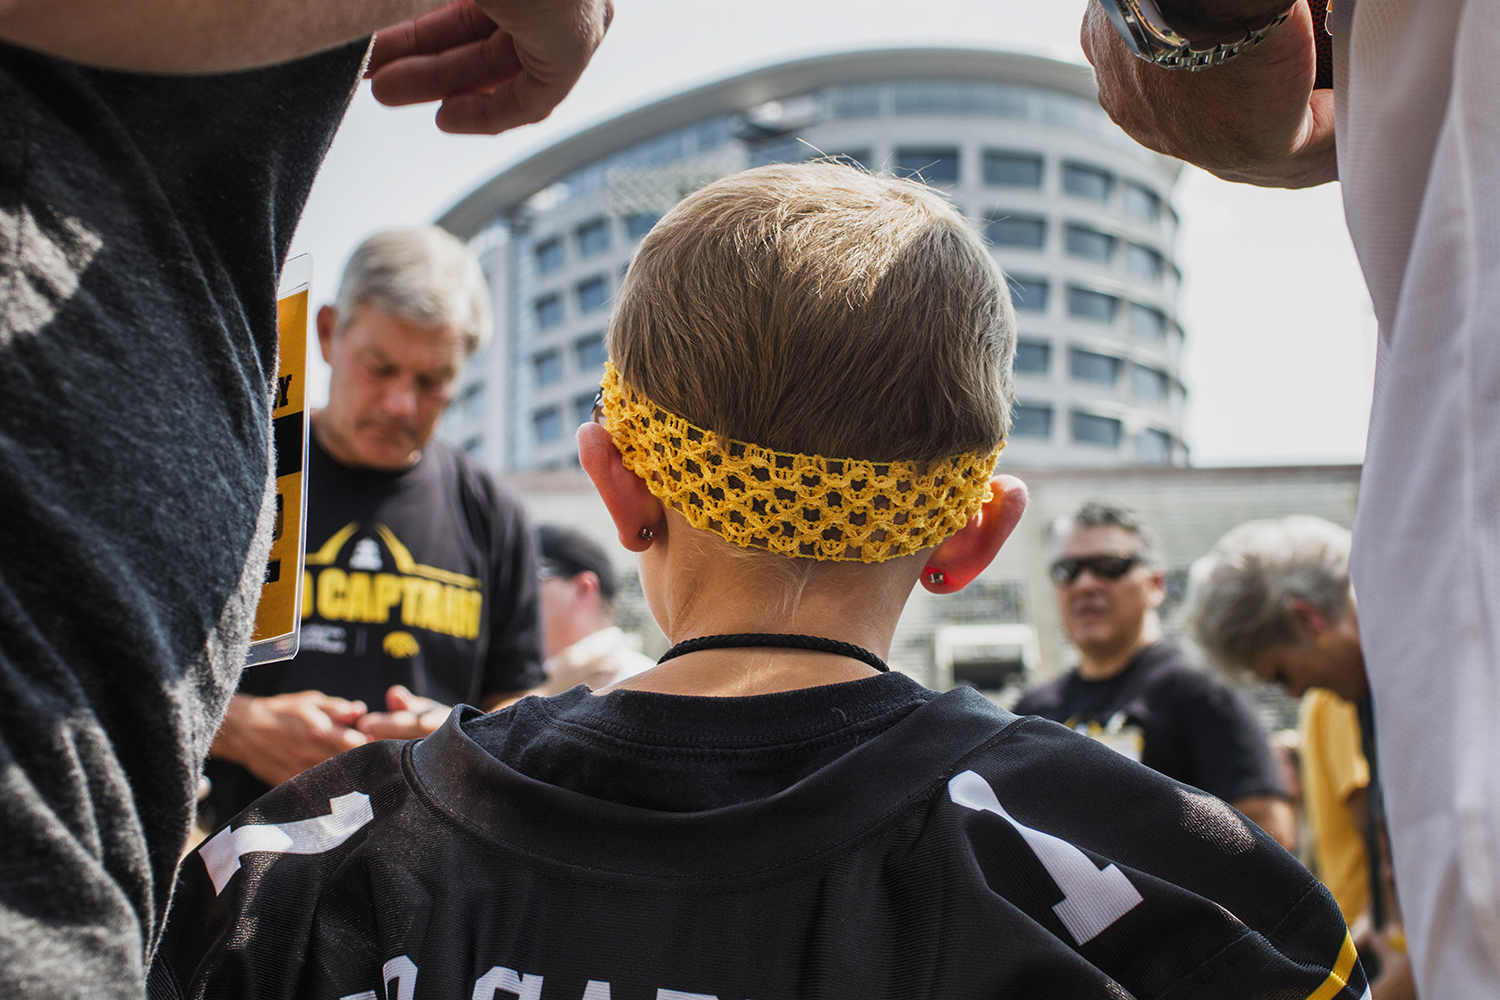 Kid Captain Harper Stribe waits to meet Iowa head coach Kirk Ferentz during Iowa Football Kids' Day at Kinnick Stadium on Saturday, Aug. 11, 2018. The 2018 Kid Captains met the Iowa football team and participated in a behind-the-scenes tour of Kinnick Stadium.